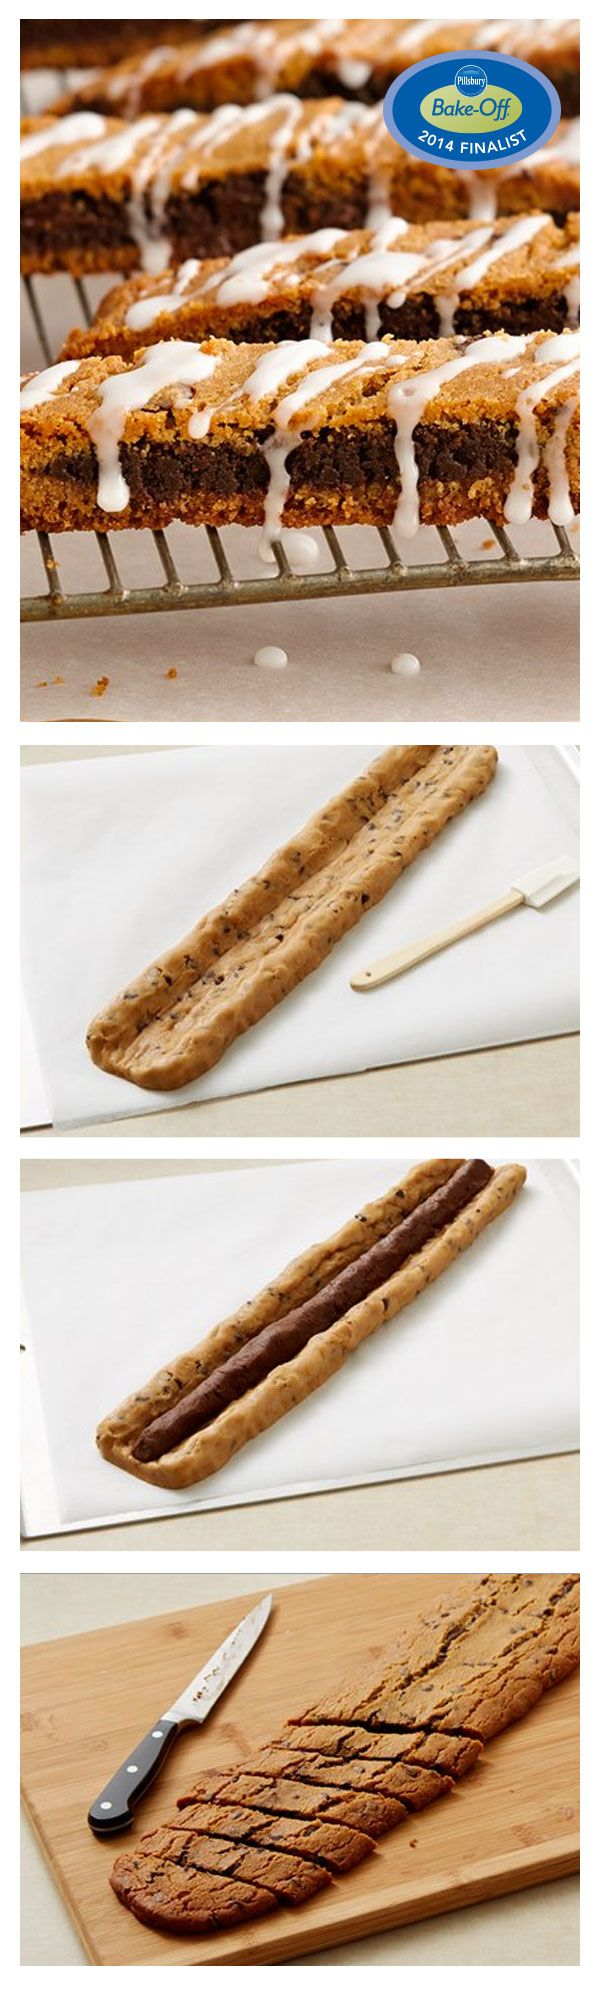 47th Bake-Off Contest Finalist: Chocolate-in-the-Middle Biscotti by Marcia Jacobovitz from Cedar Grove, NJ